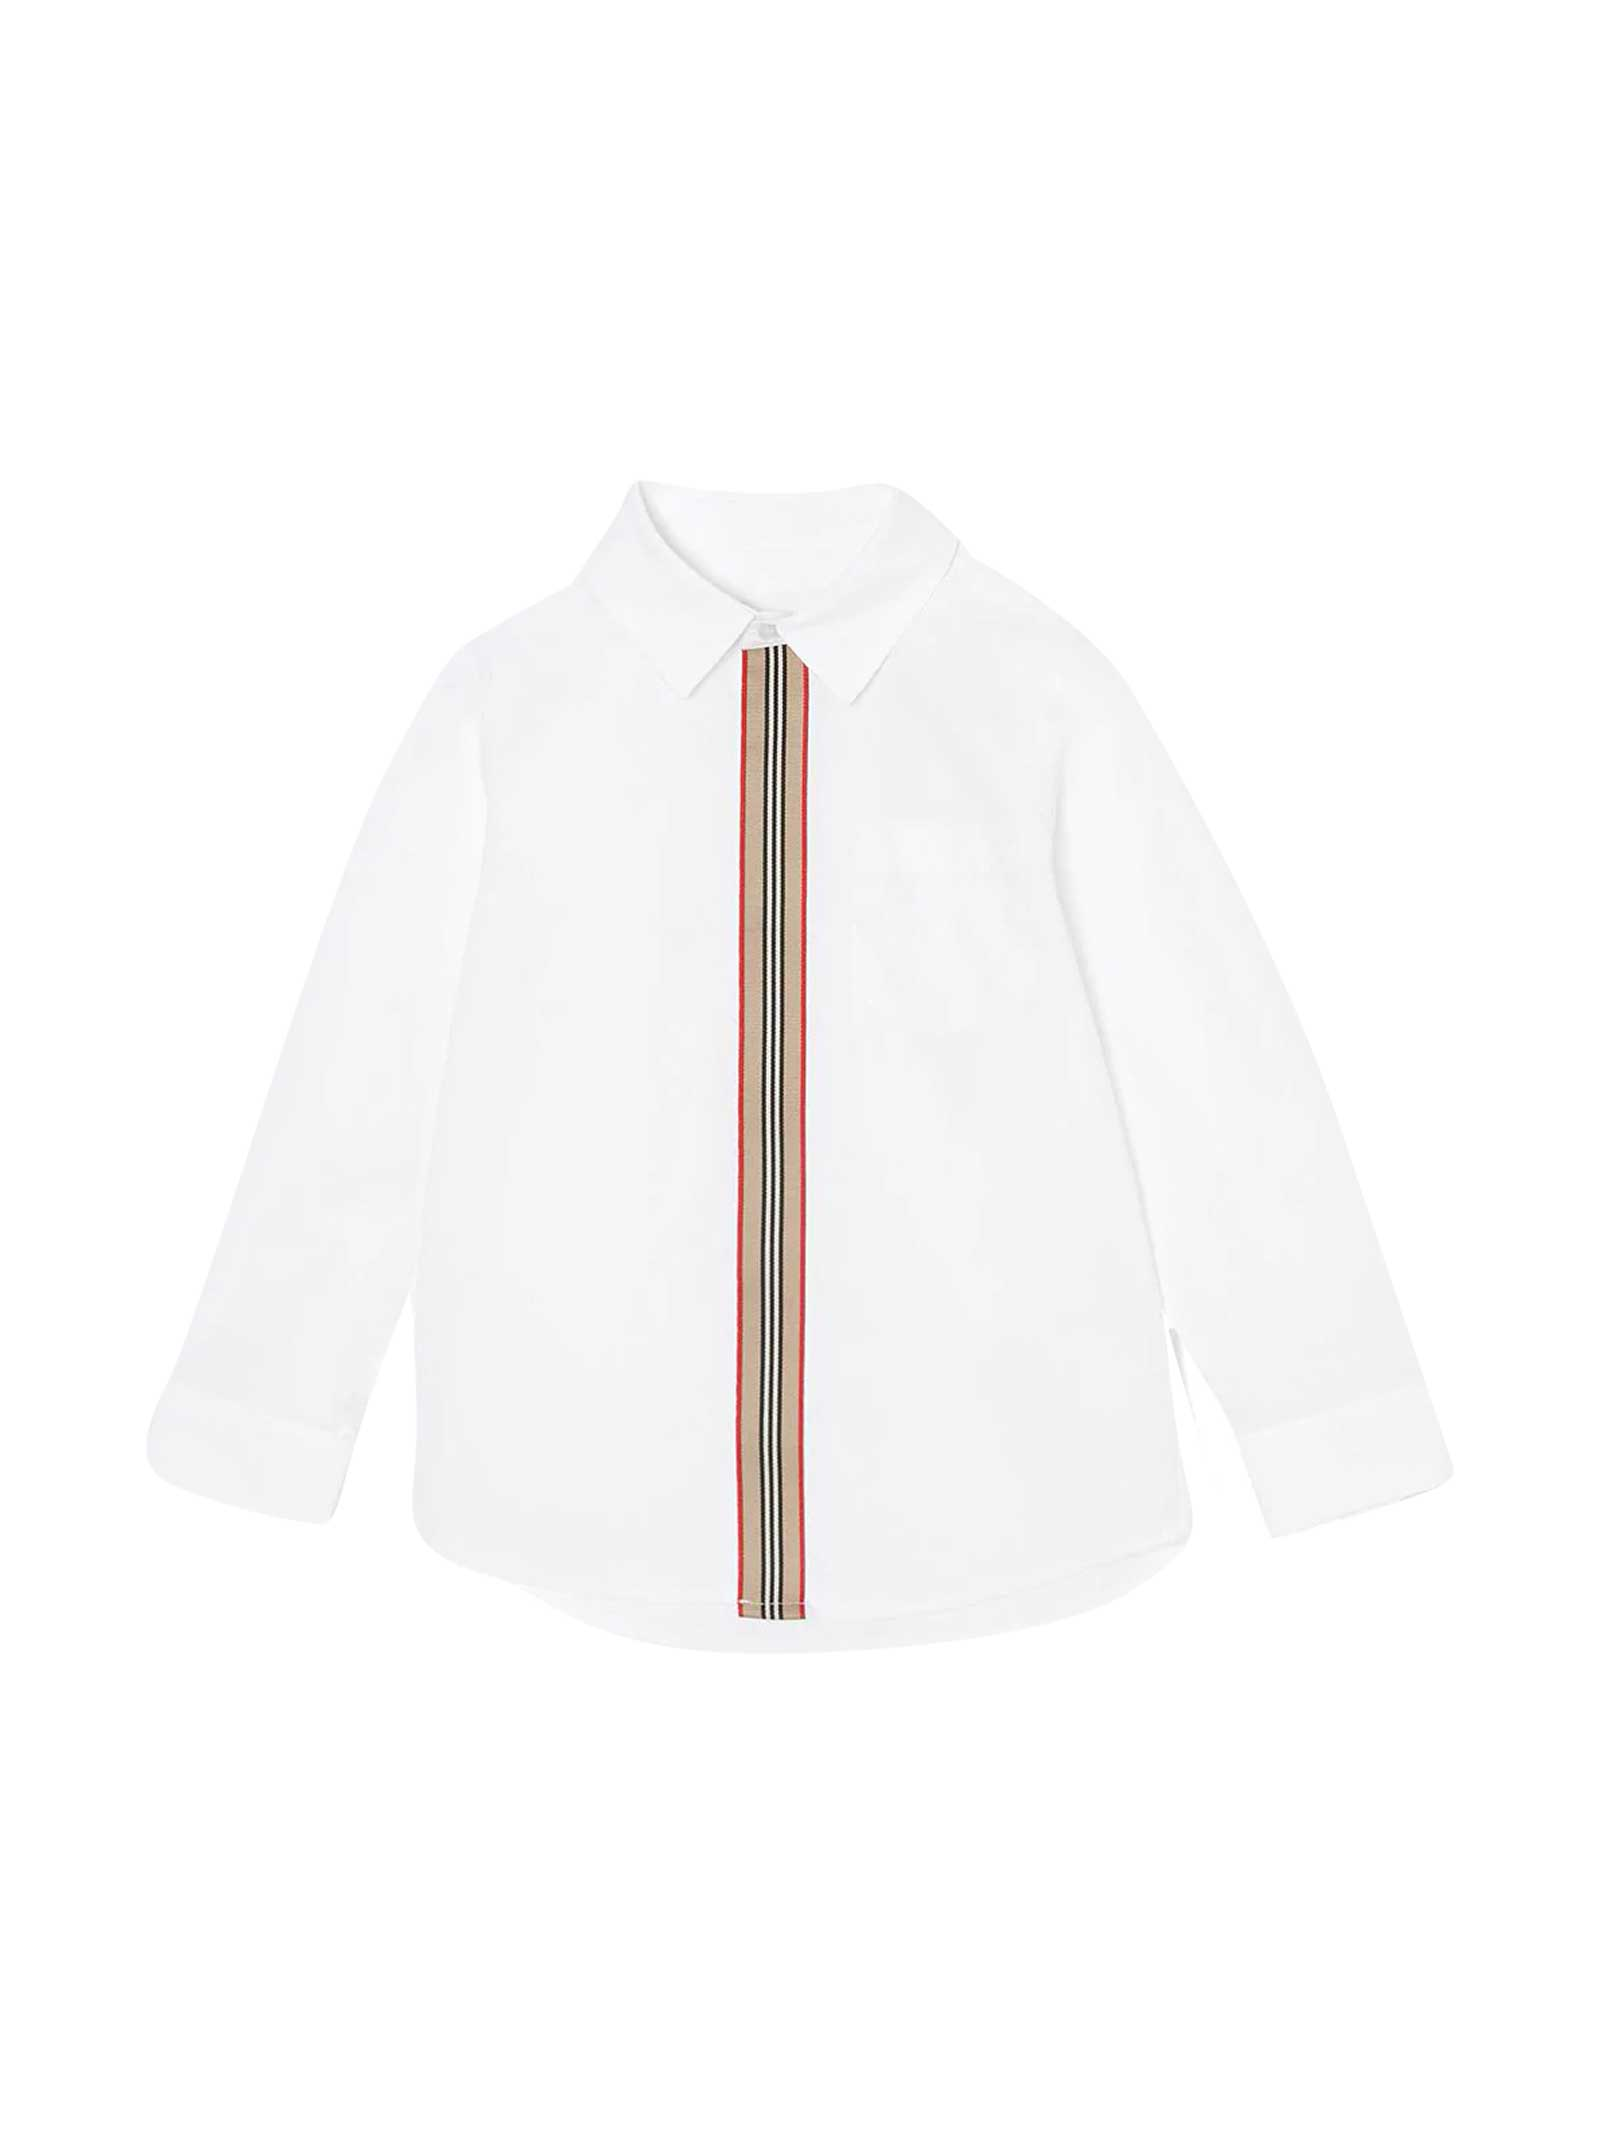 Burberry Kids' White Shirt With Frontal Stripe In Bianco